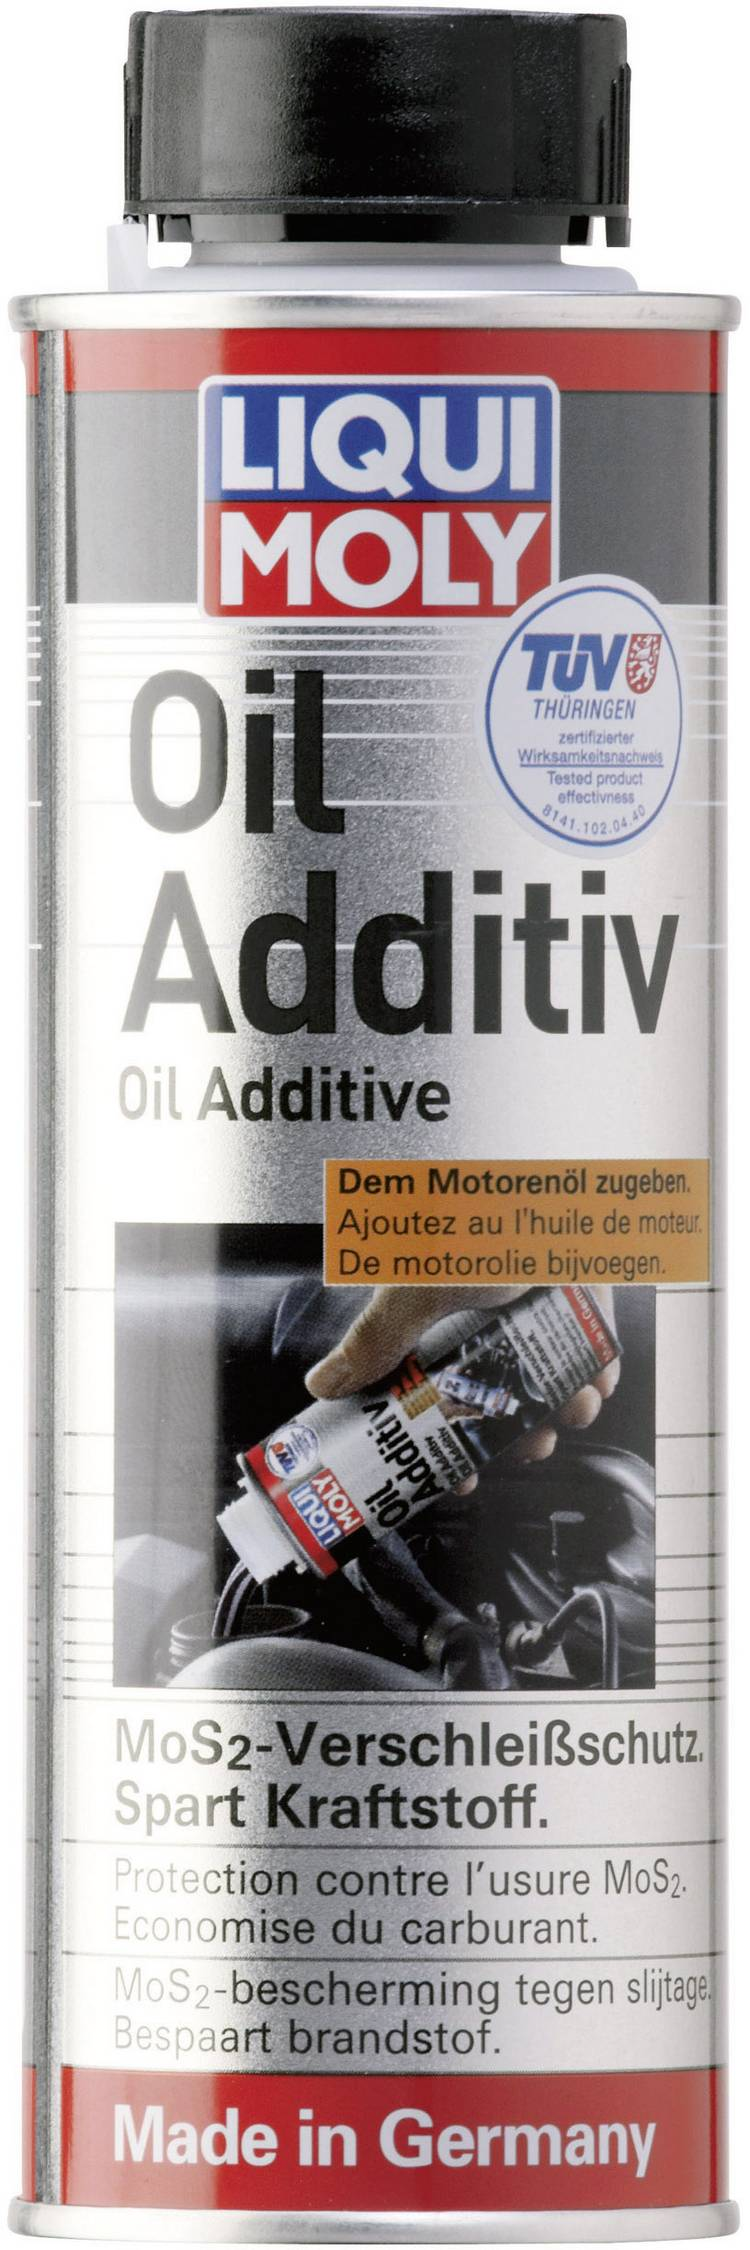 Liqui Moly 1012 Oil-Additiv 200 ml